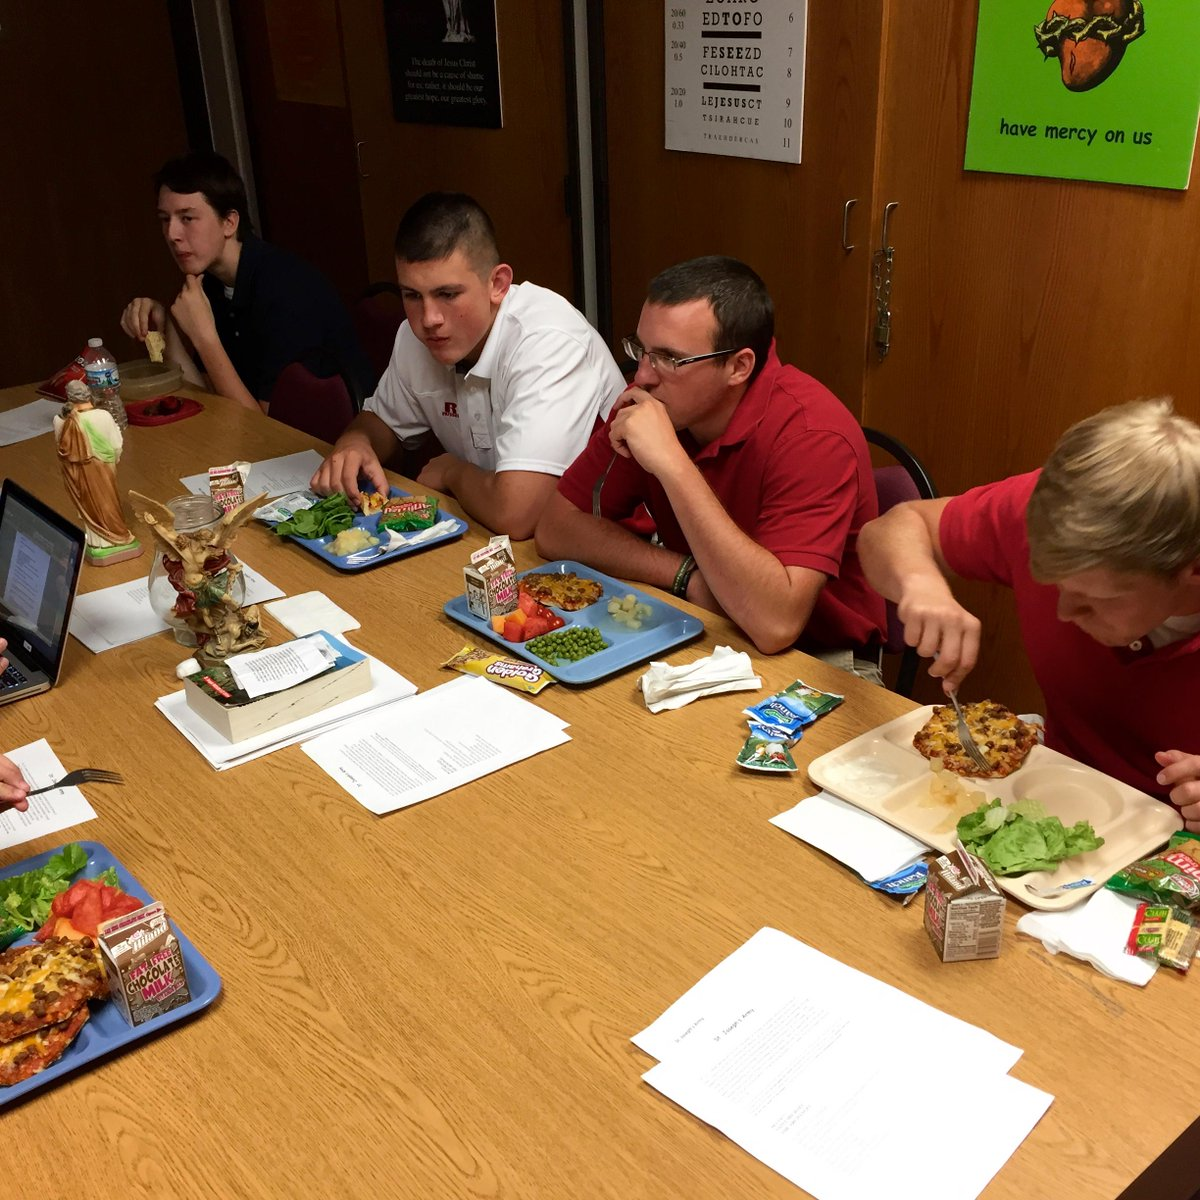 """Part of our """"St. Joseph's Army"""" that meets over lunch @NorfolkCatholic. Today's topic was Creation. #CatholicEdChat http://t.co/SamQH8cpxA"""